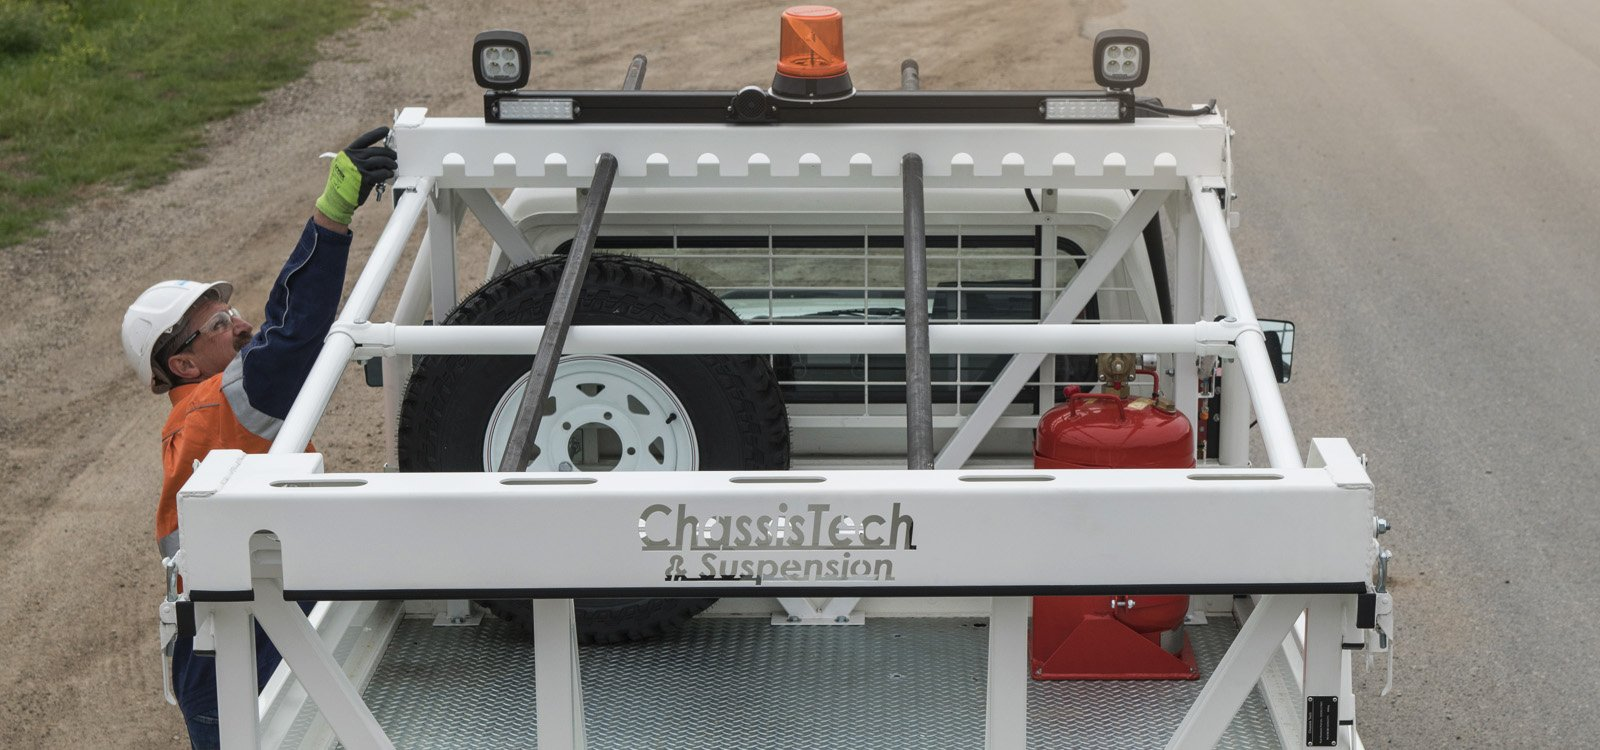 <p>The rods are double-clamped and strapped down to ensure secure transport.</p>